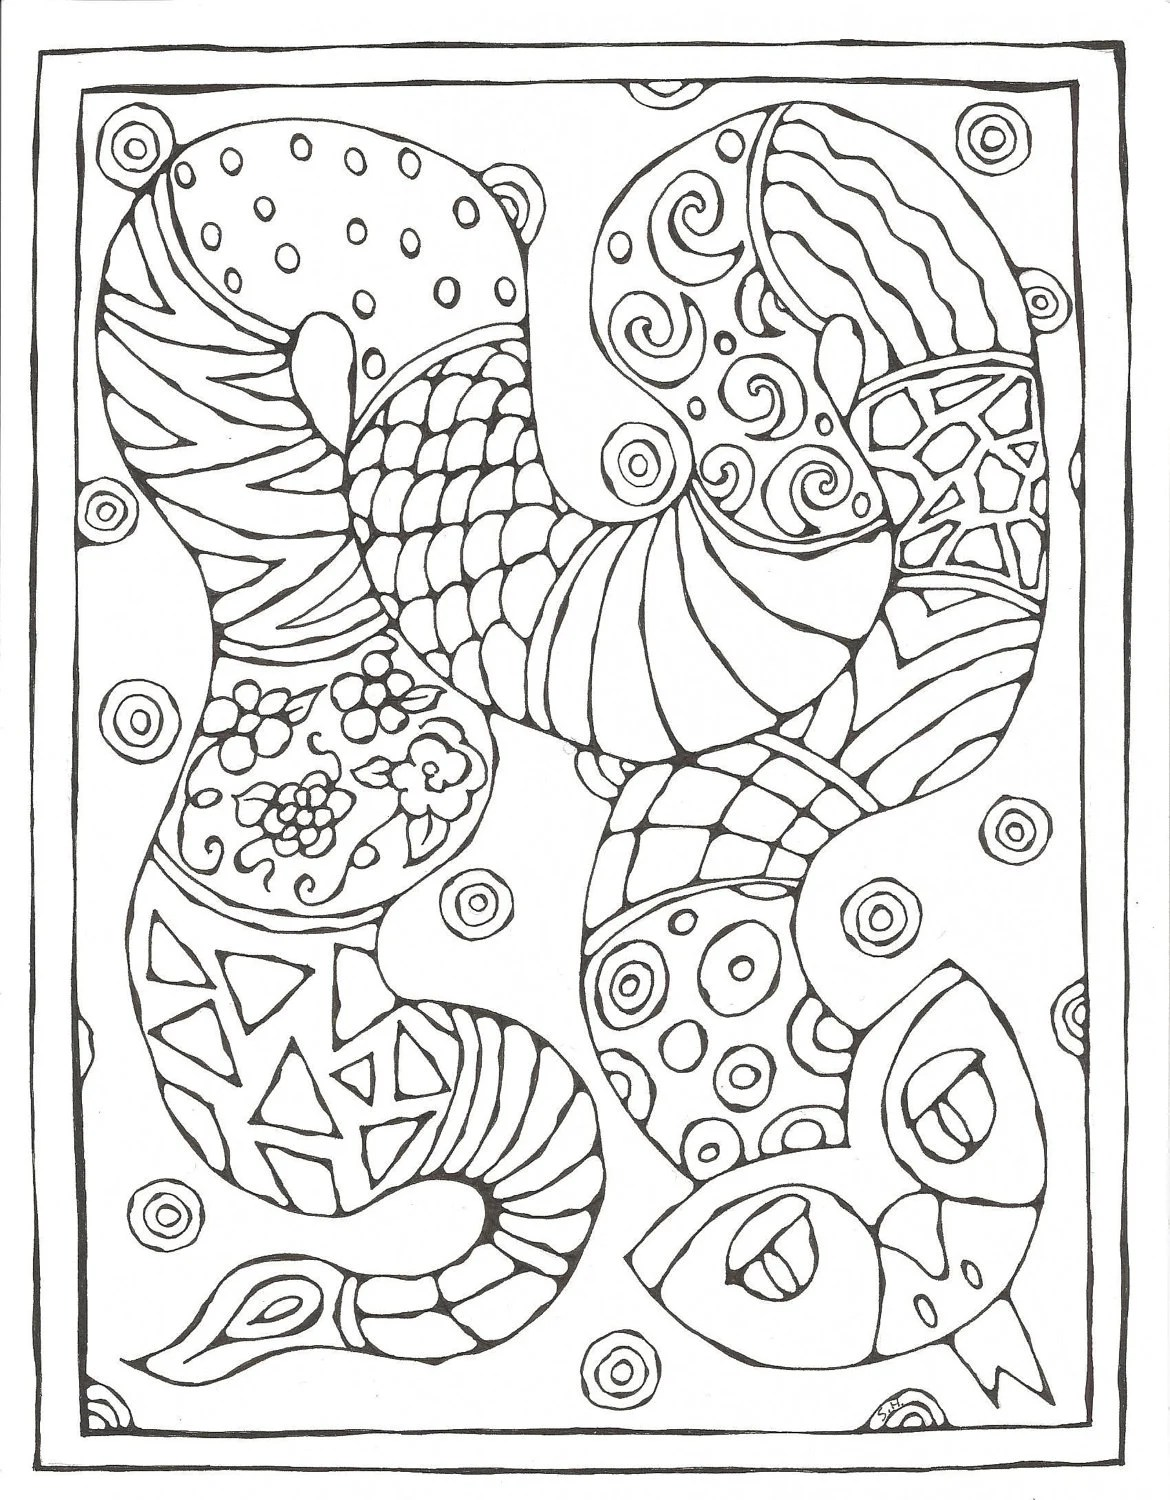 coloring pages zodiac signs google twit taurus coloring page by